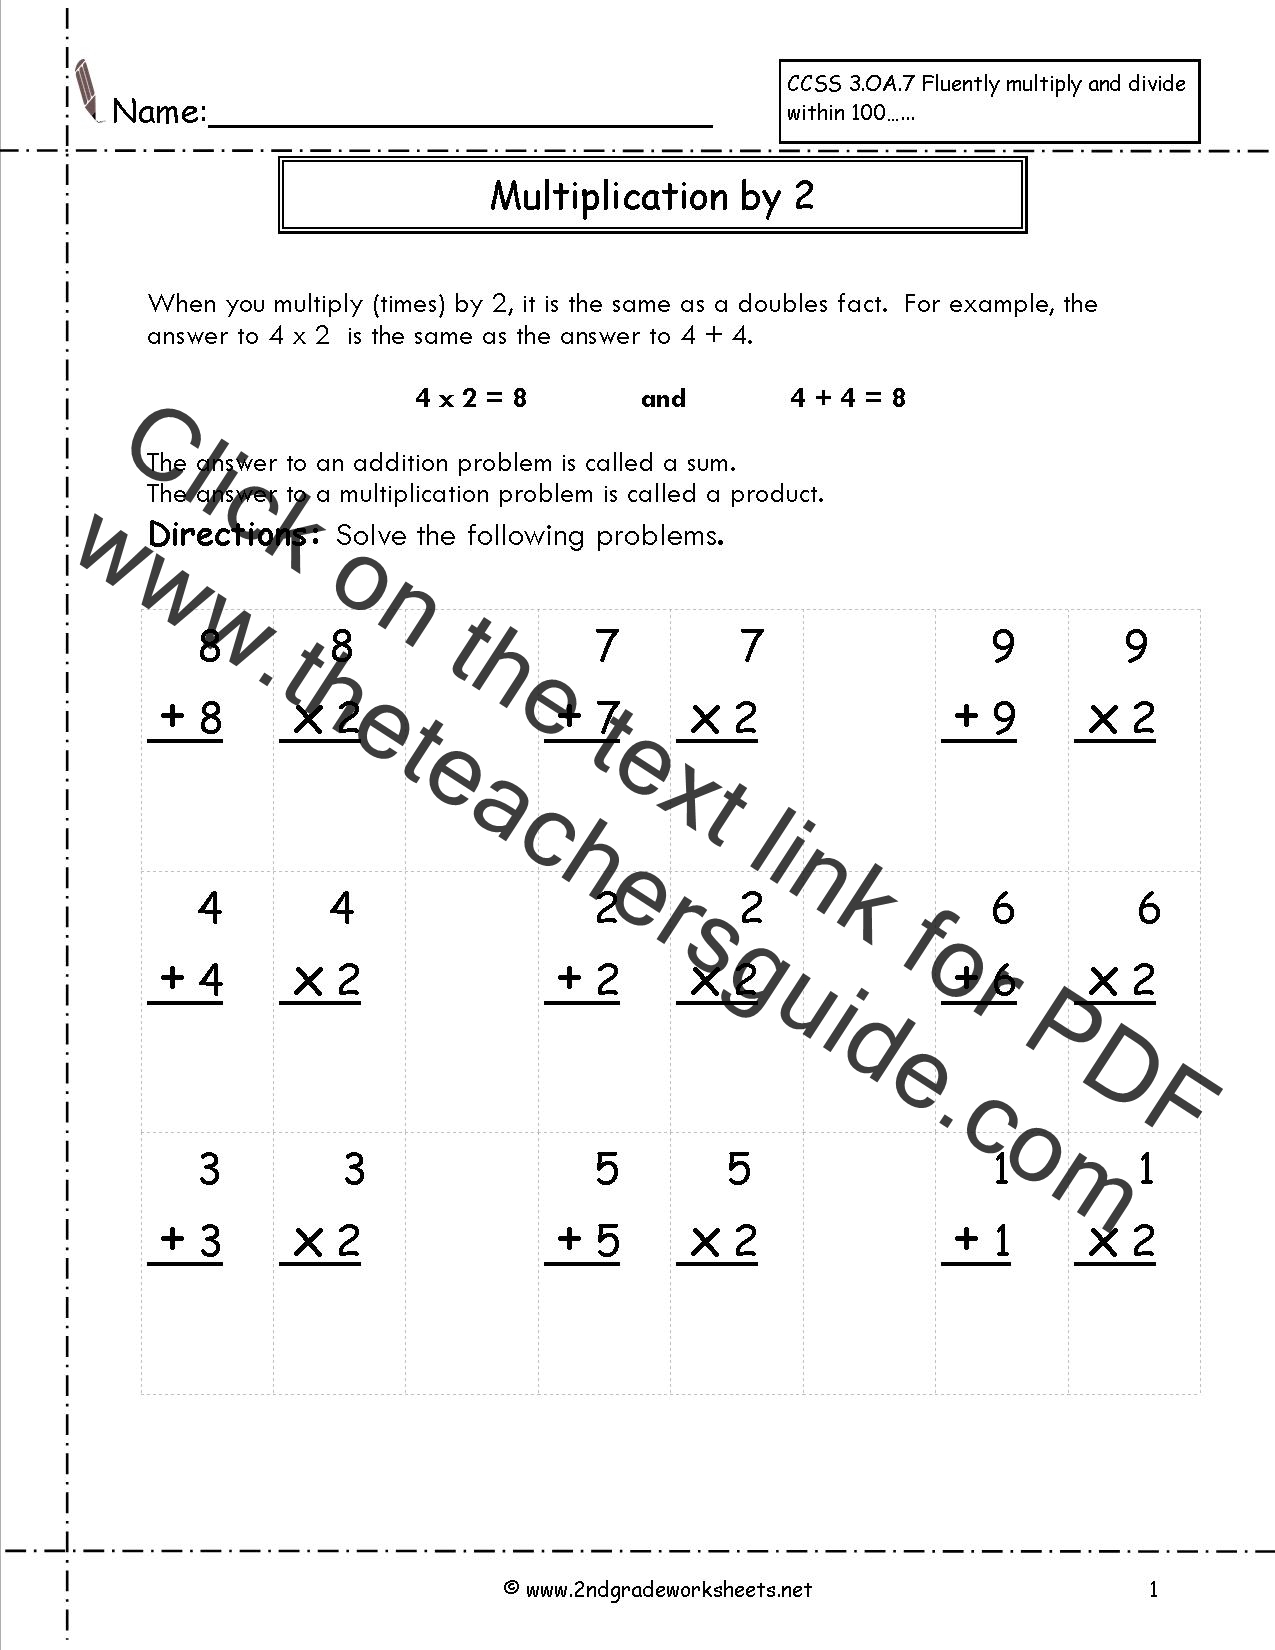 Worksheets Second Grade Multiplication Worksheets multiplication worksheets and printouts by two with doubles worksheet